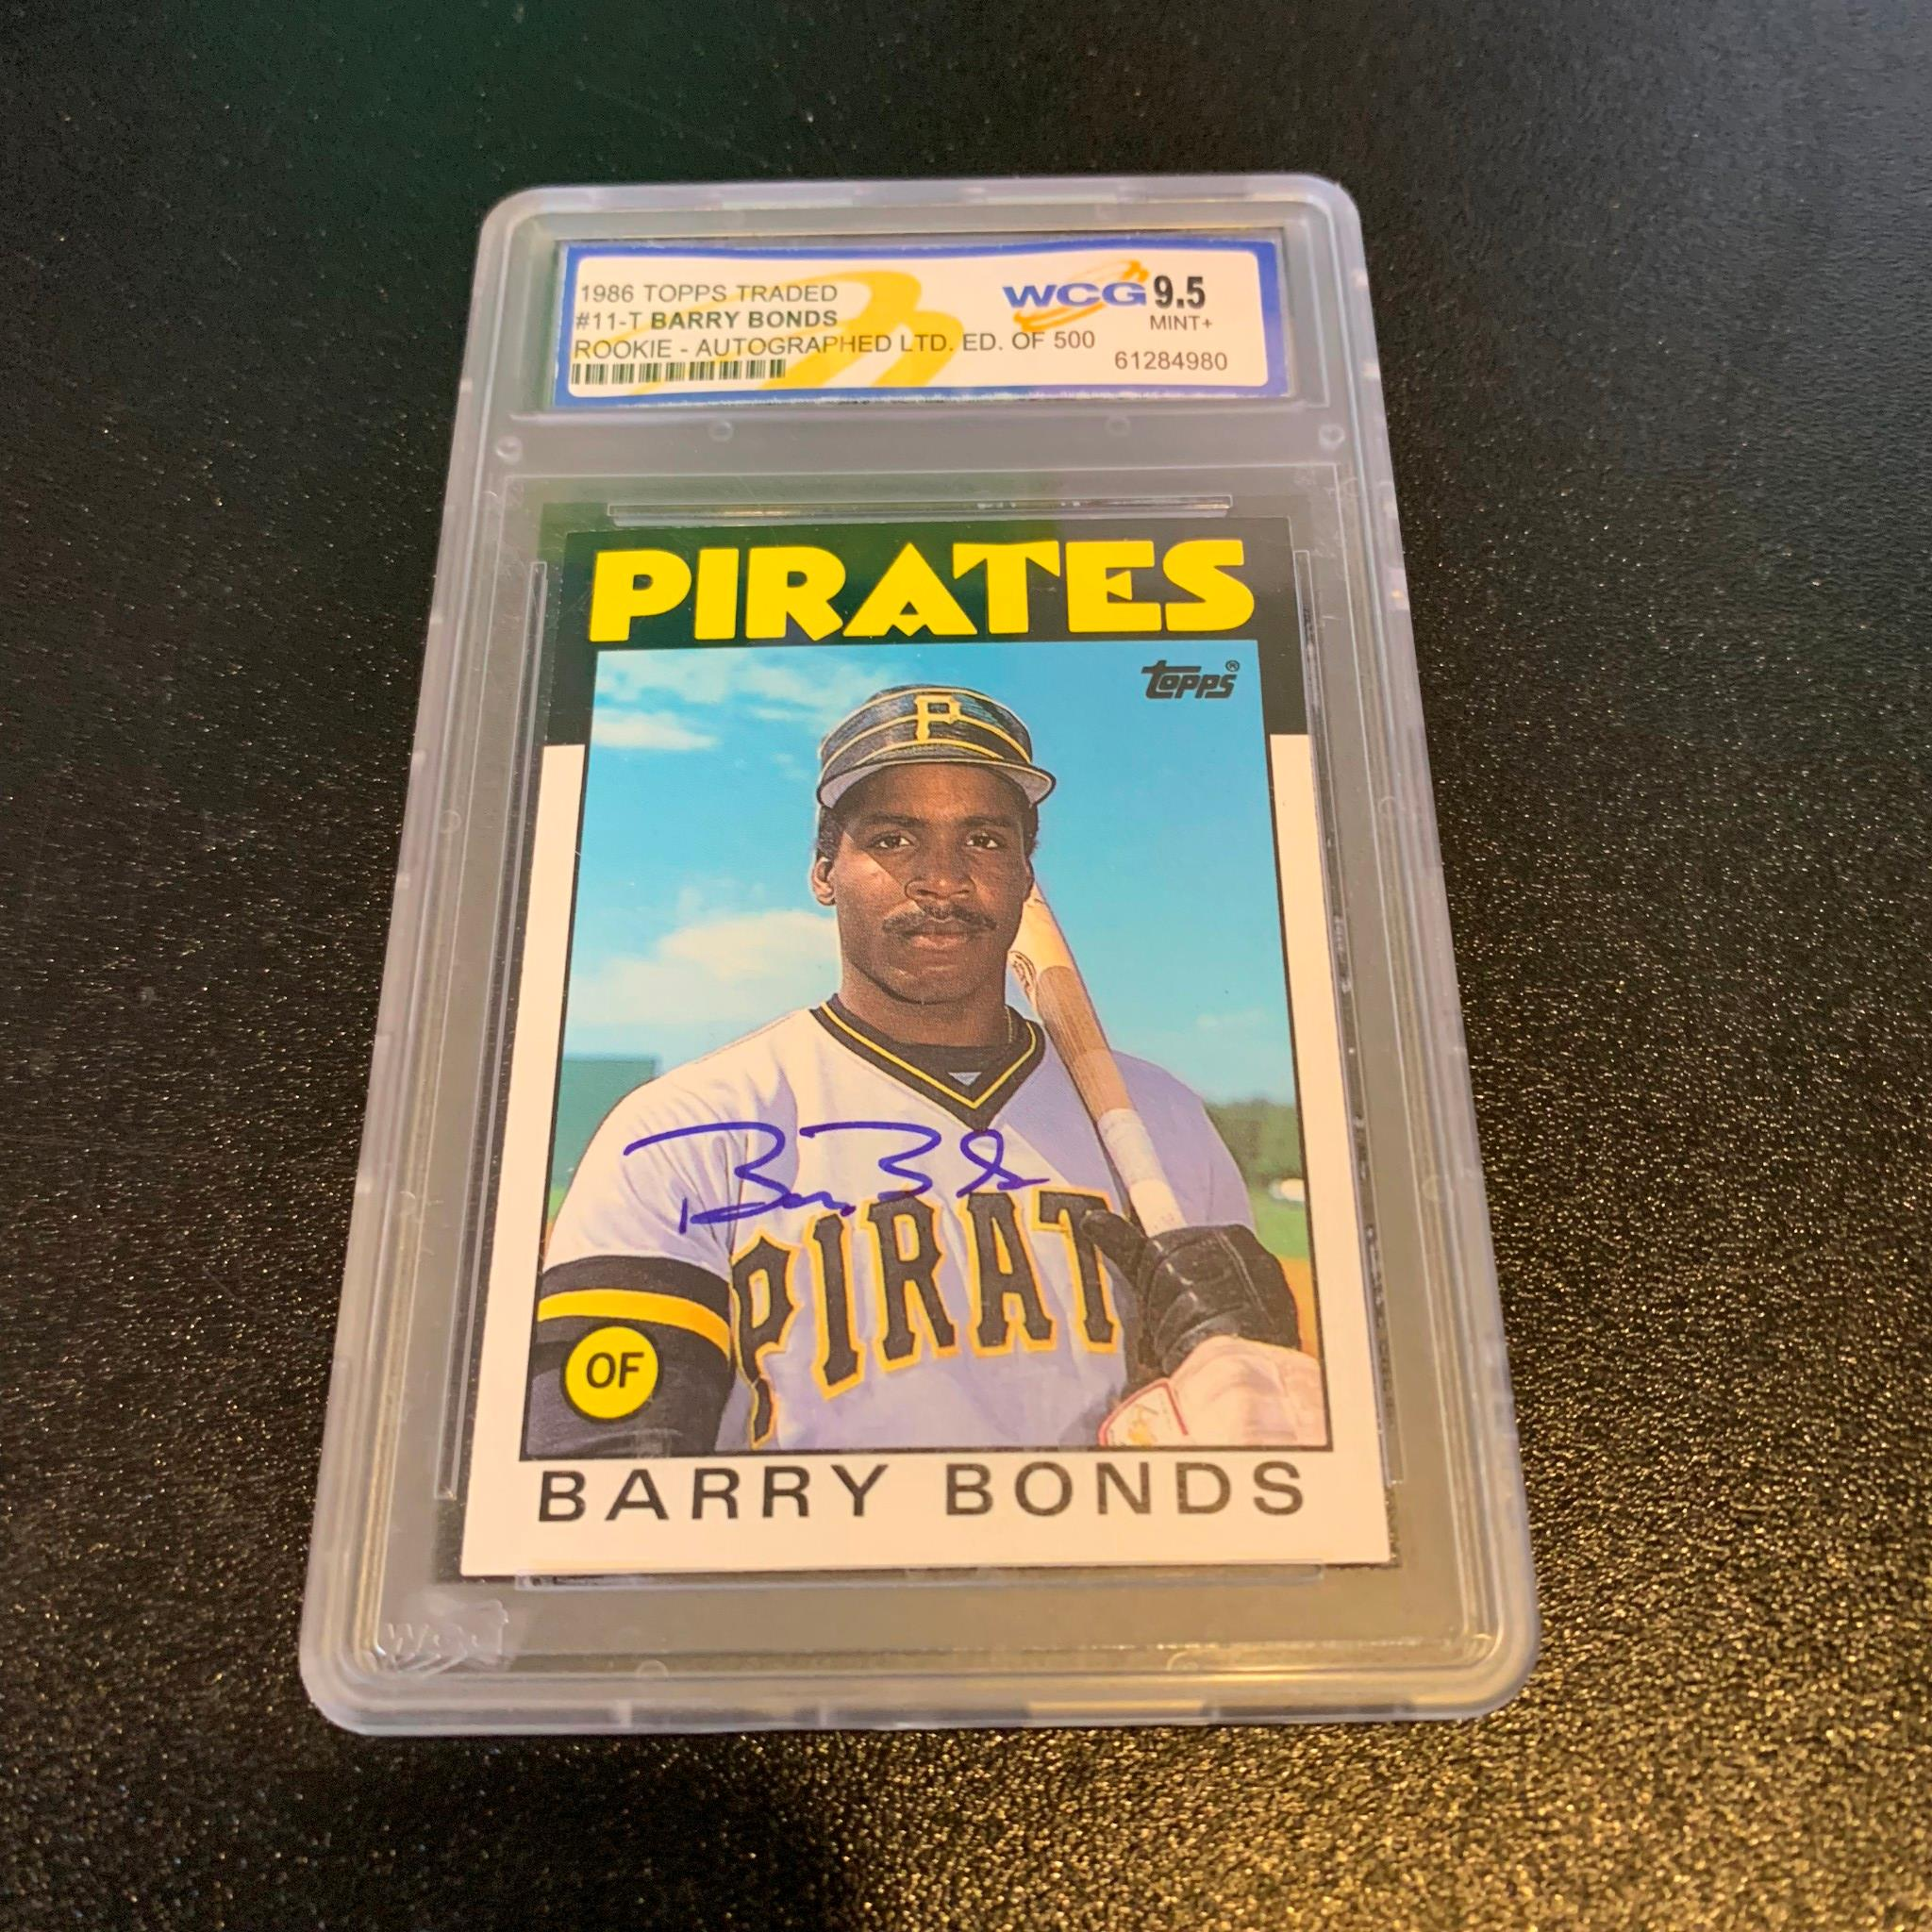 Details About 1986 Topps Traded Barry Bonds Rc Rookie Signed Autographed Baseball Card Coa